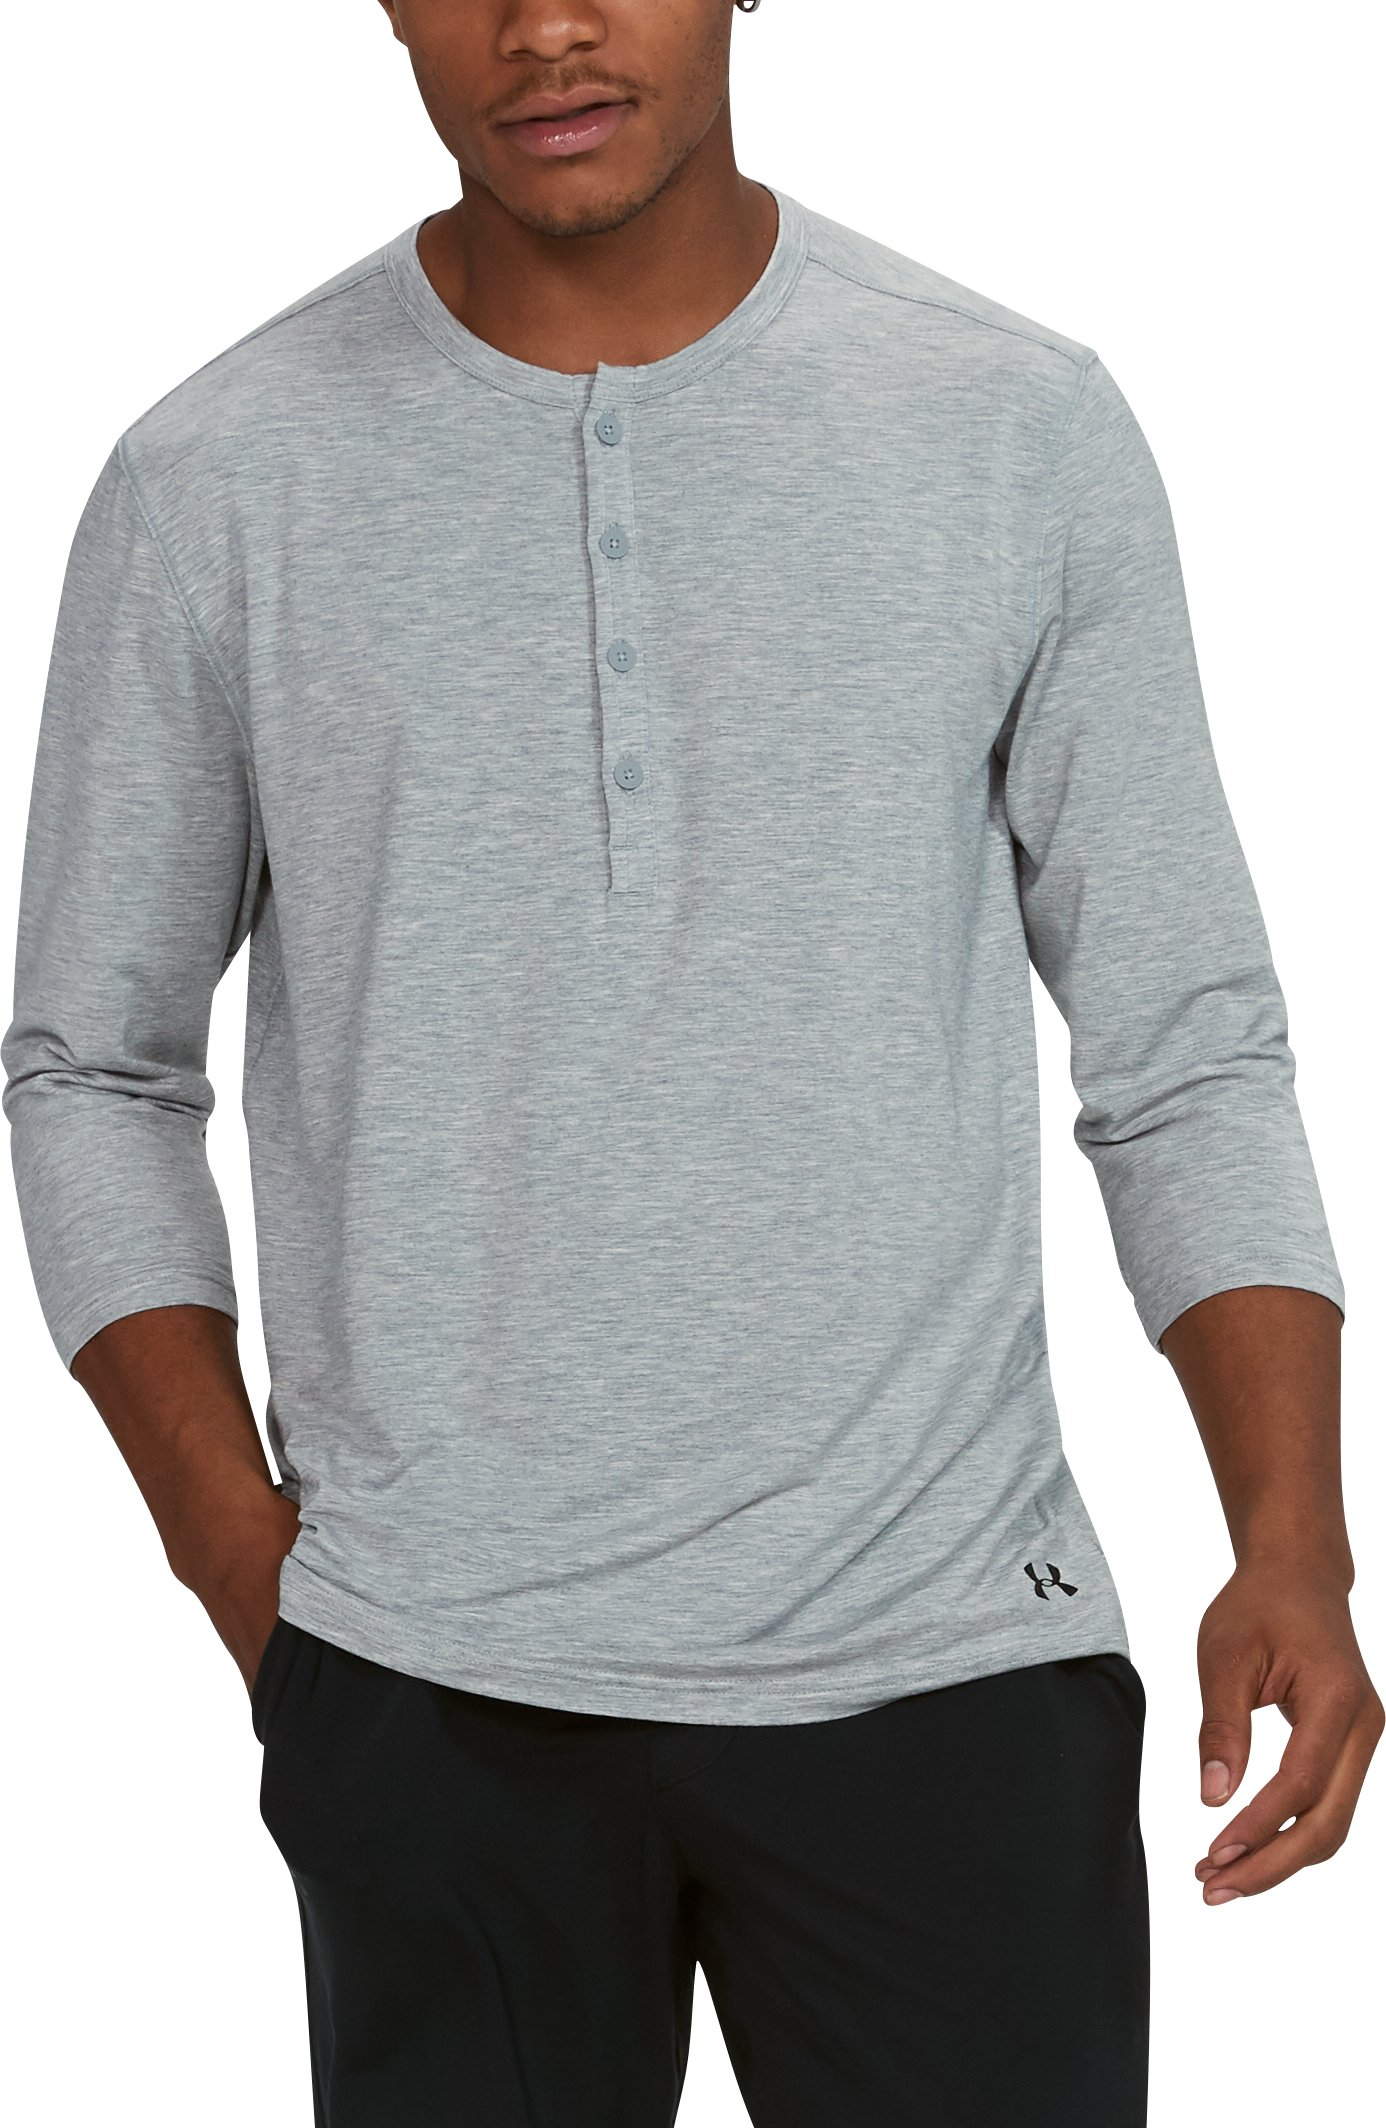 Men's Athlete Recovery Ultra Comfort Sleepwear Henley, True Gray Heather